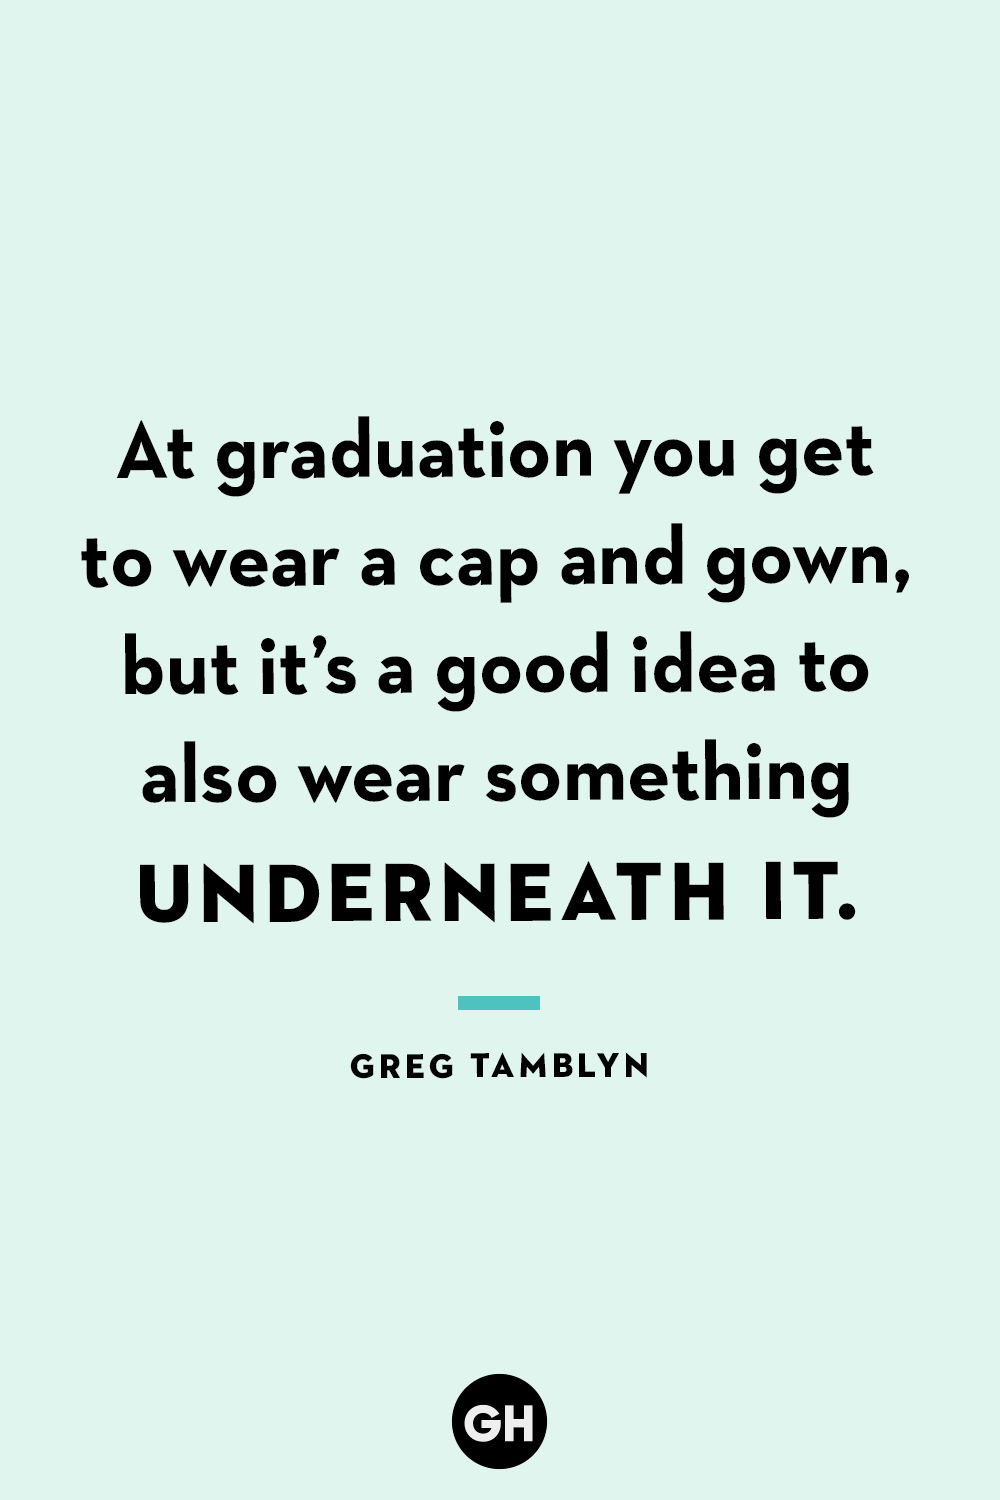 35 Best Funny Graduation Quotes - Hilarious Quotes About Graduation Day